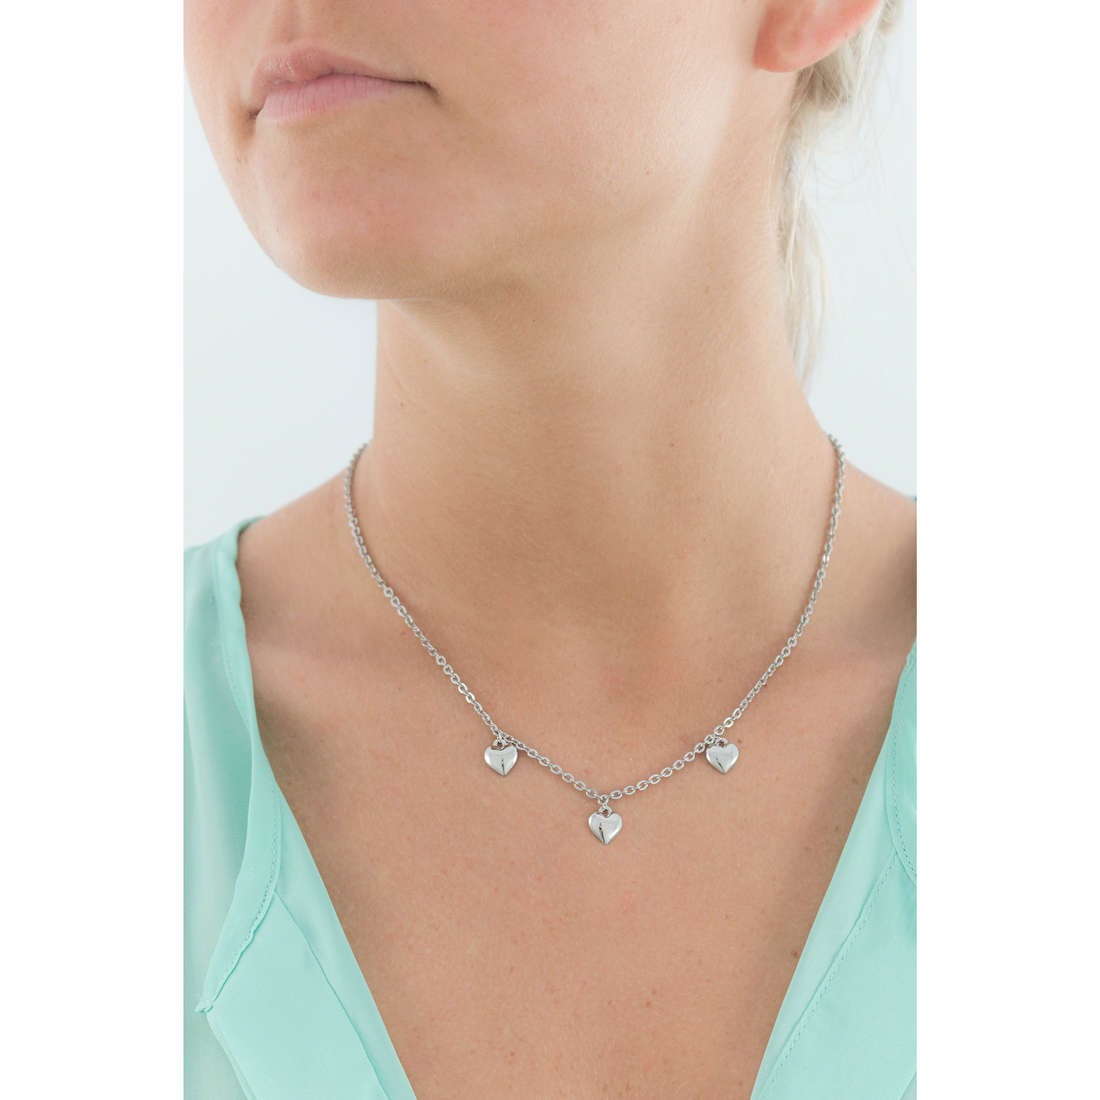 Morellato necklaces Tenerezze woman SAGZ05 indosso